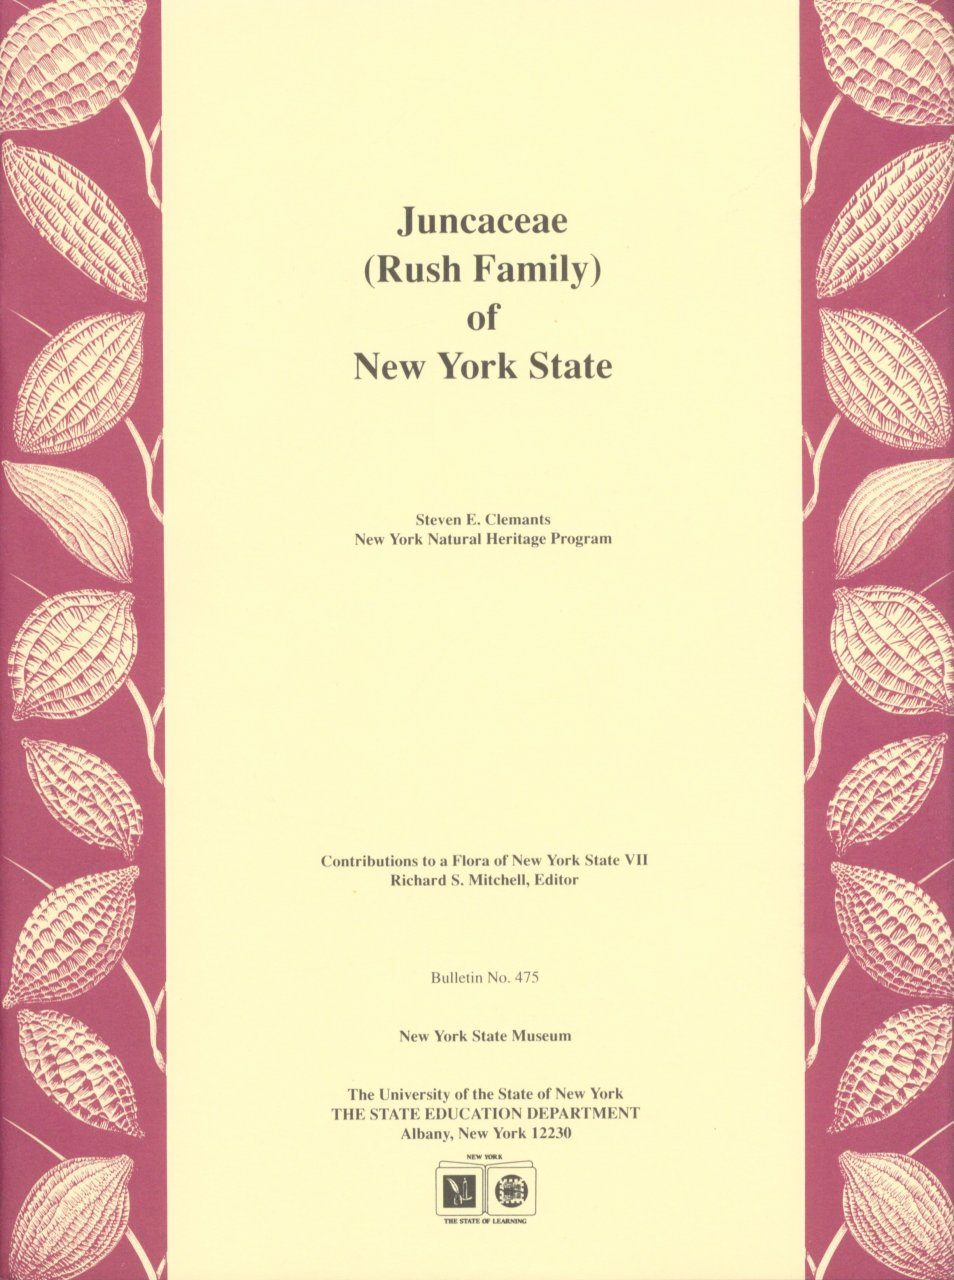 Juncaceae (Rush Family) of New York State